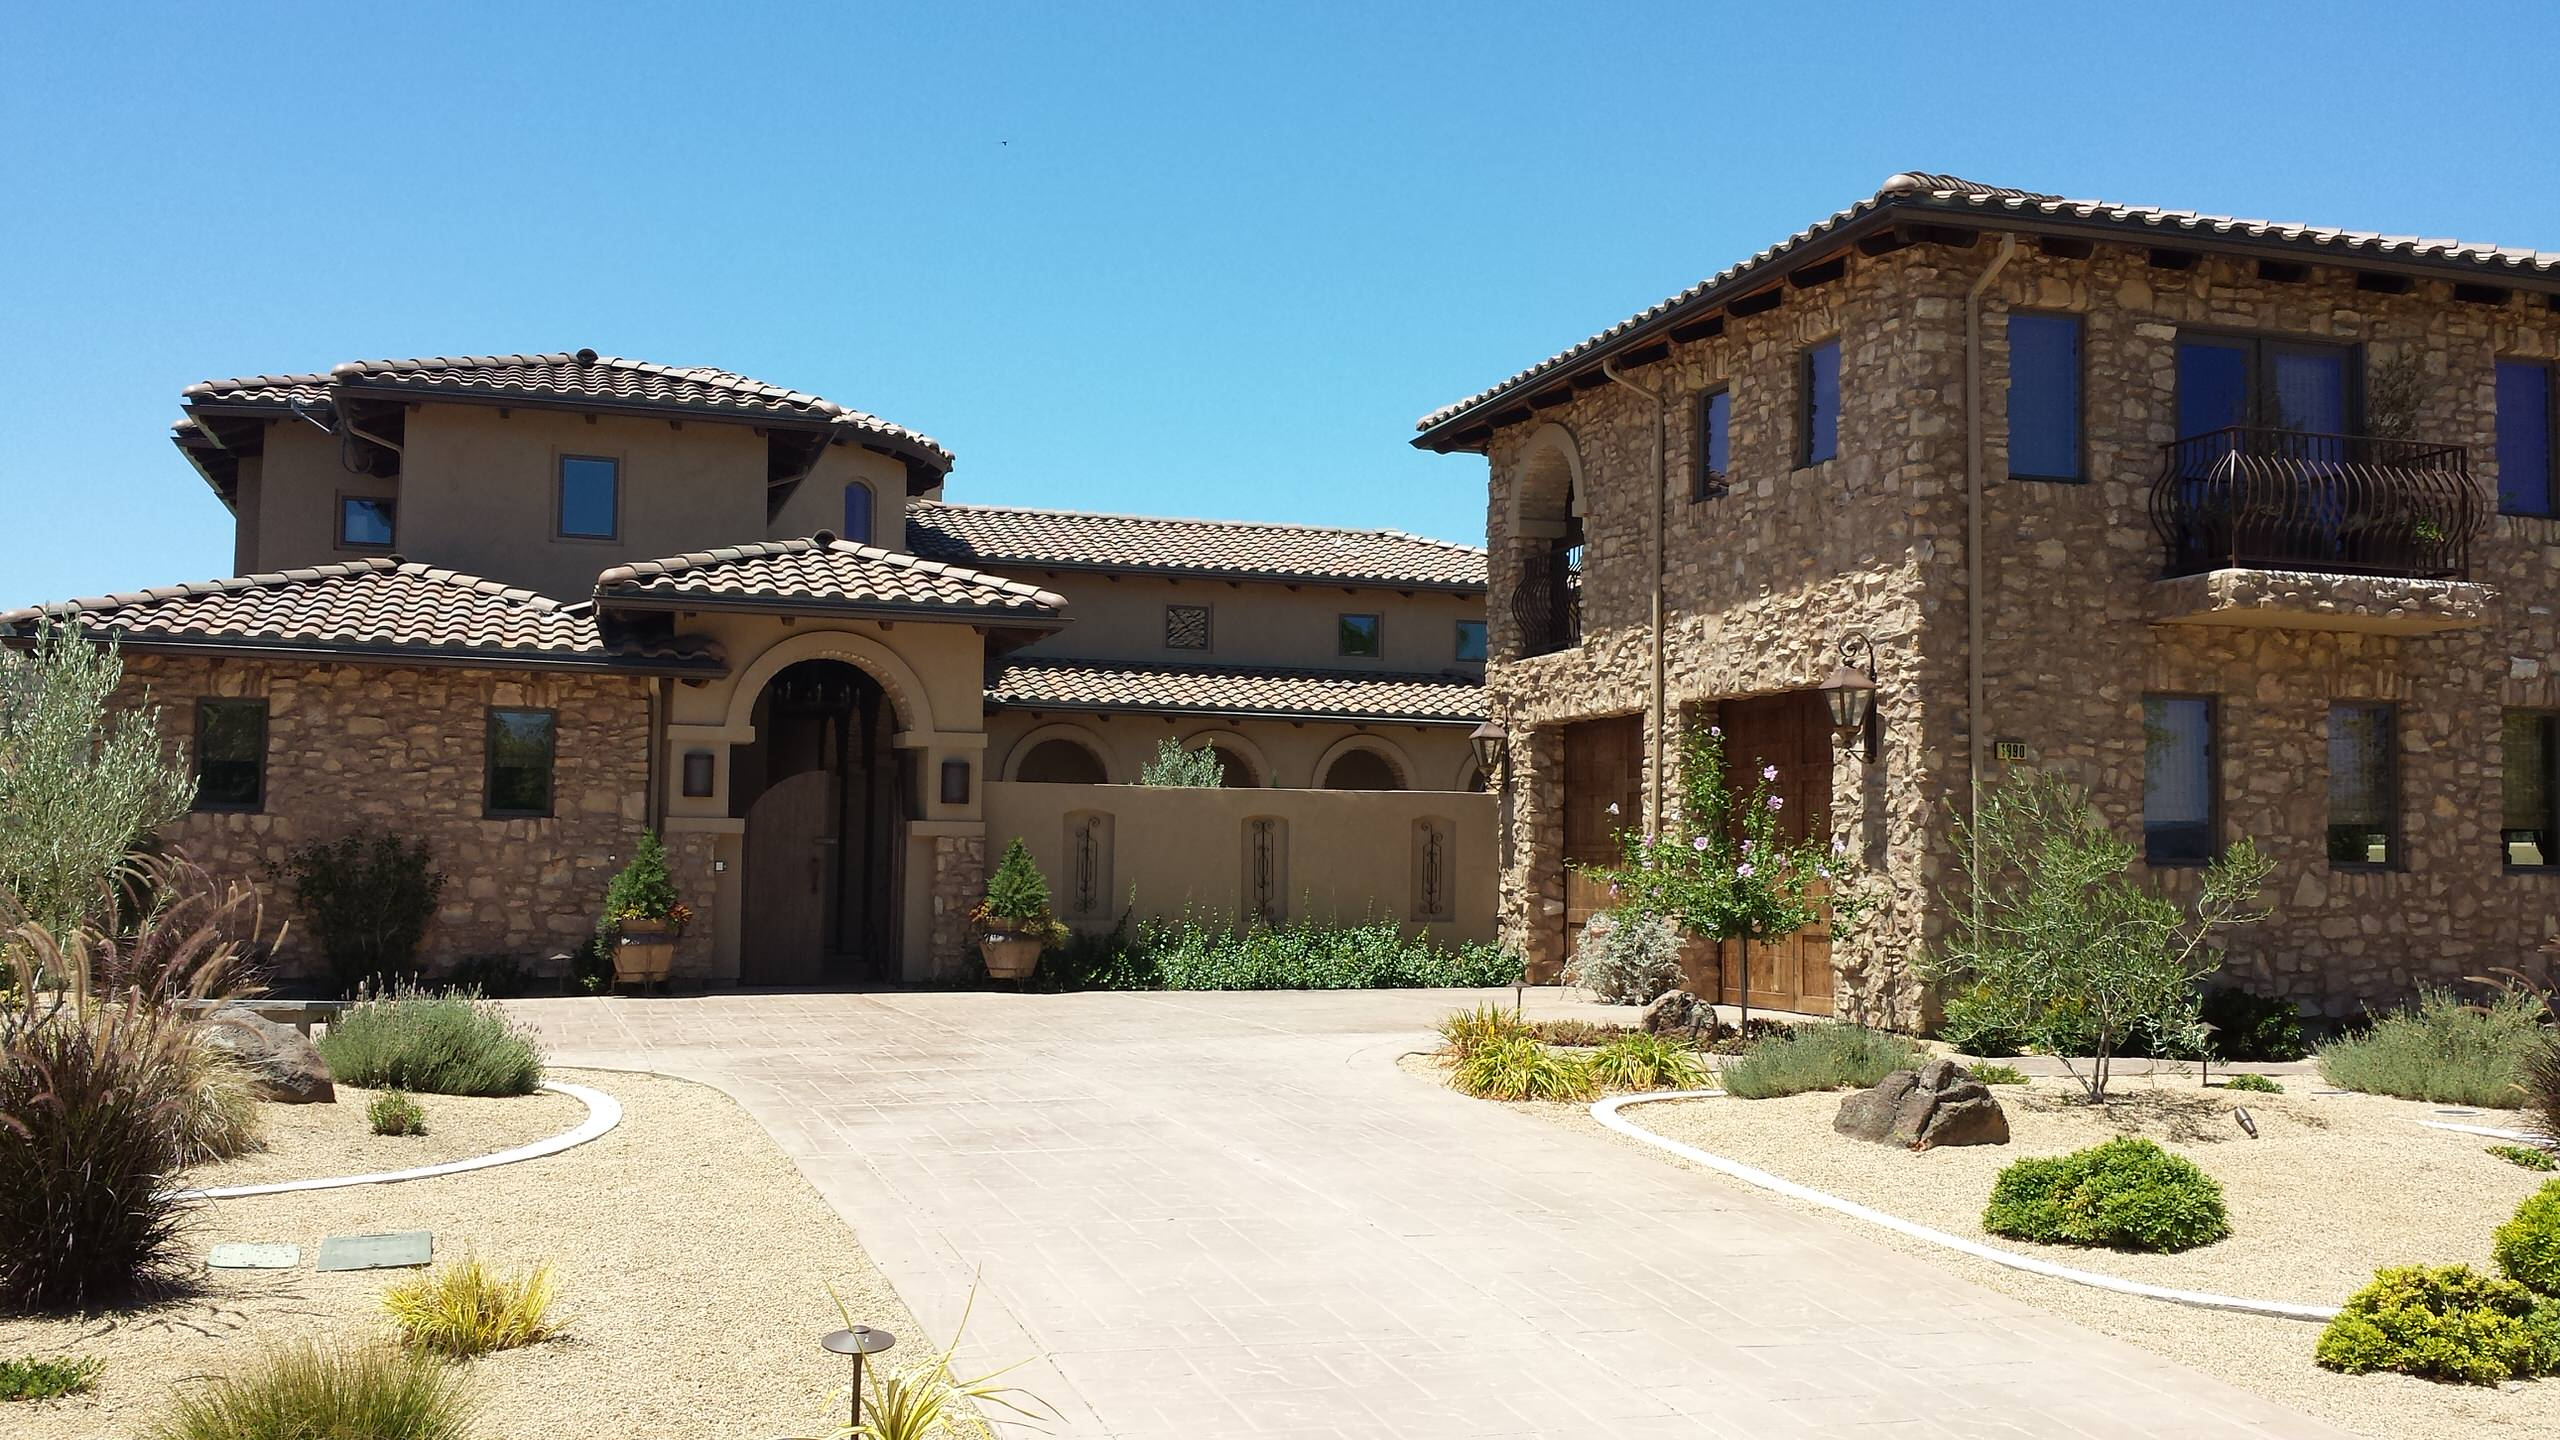 More Saddle Creek Houses by Impluvium